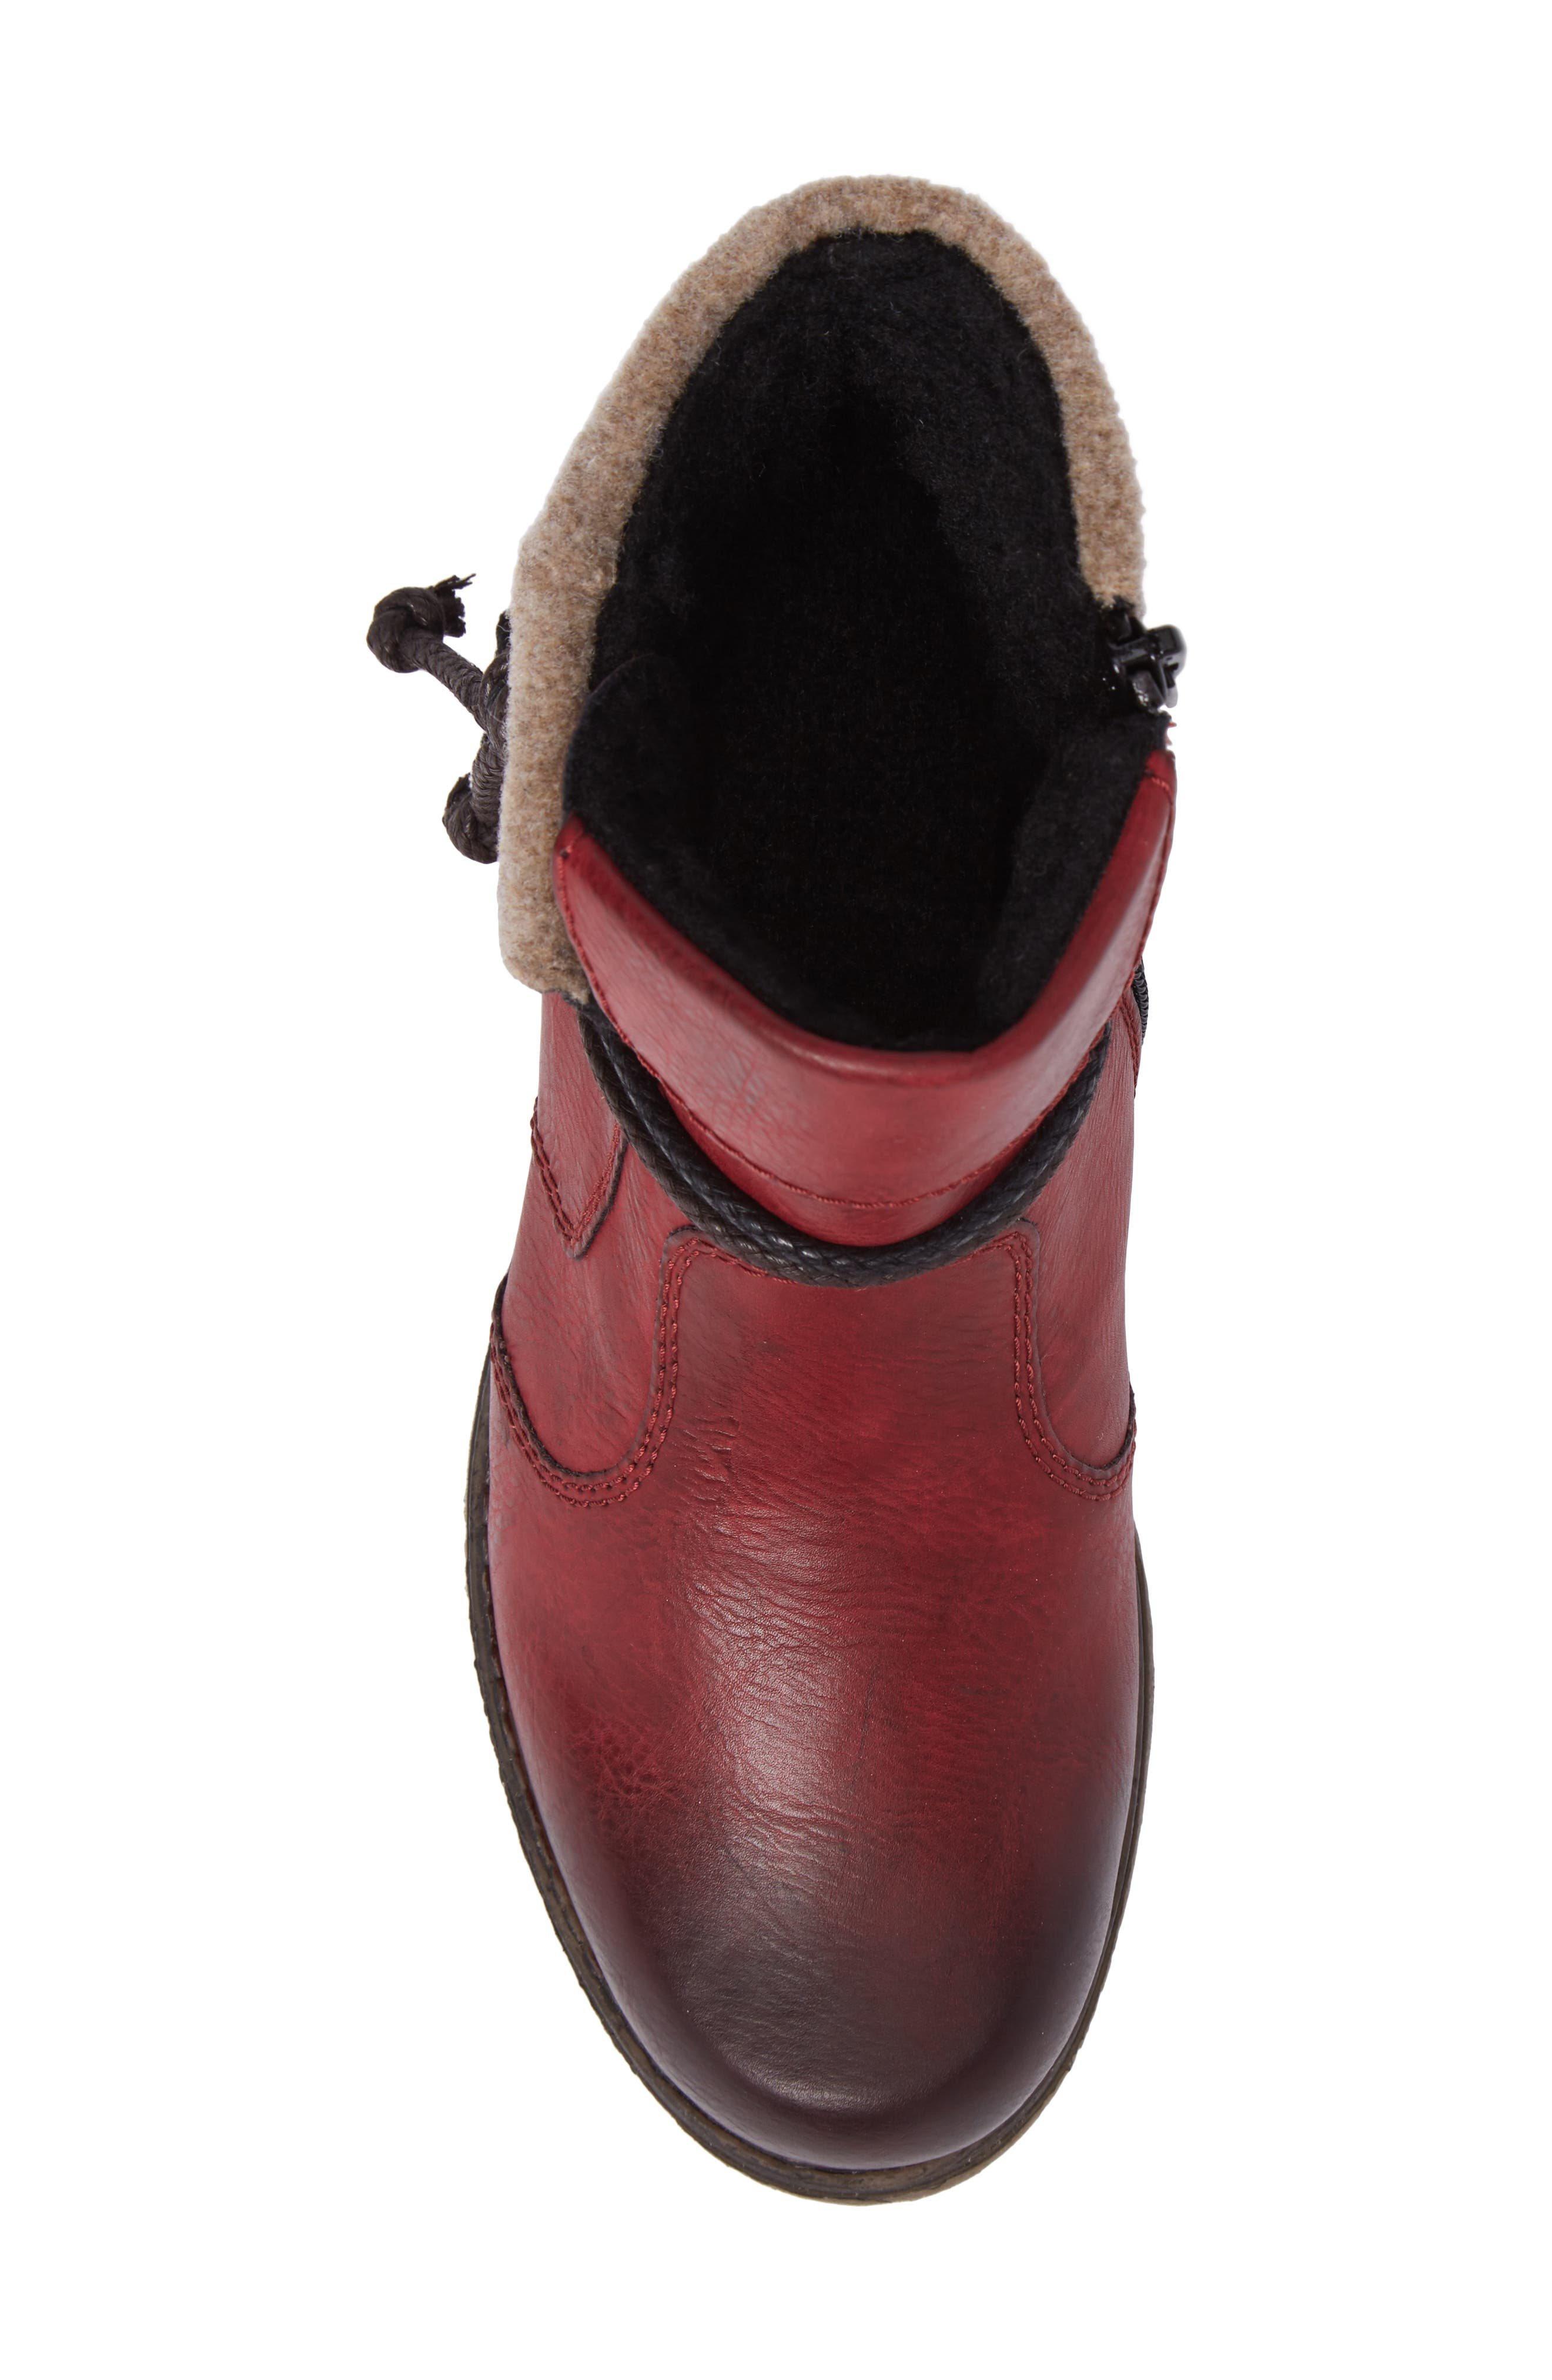 'Fee 93' Cuffed Shaft Bootie,                             Alternate thumbnail 5, color,                             Wine Faux Leather